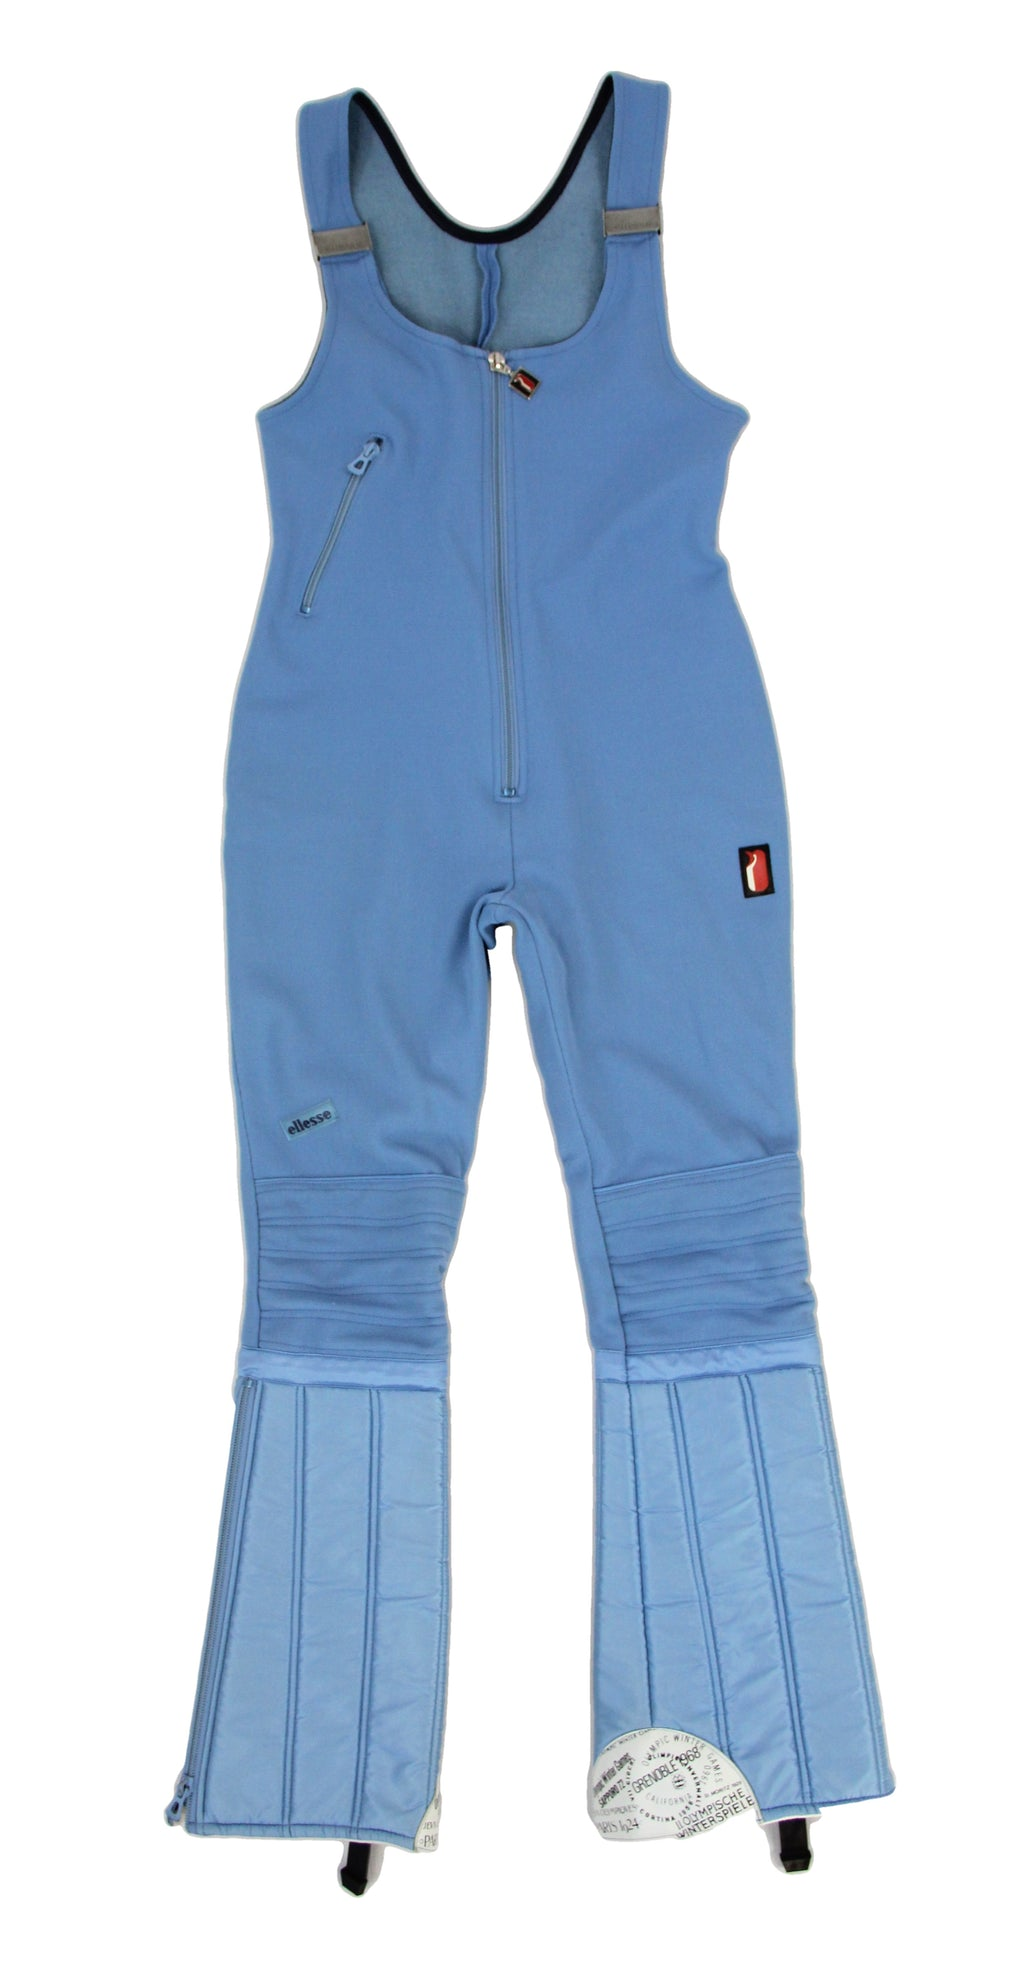 Ellesse Vintage Women's Light Blue Ski Bib Pants, SIZE XS